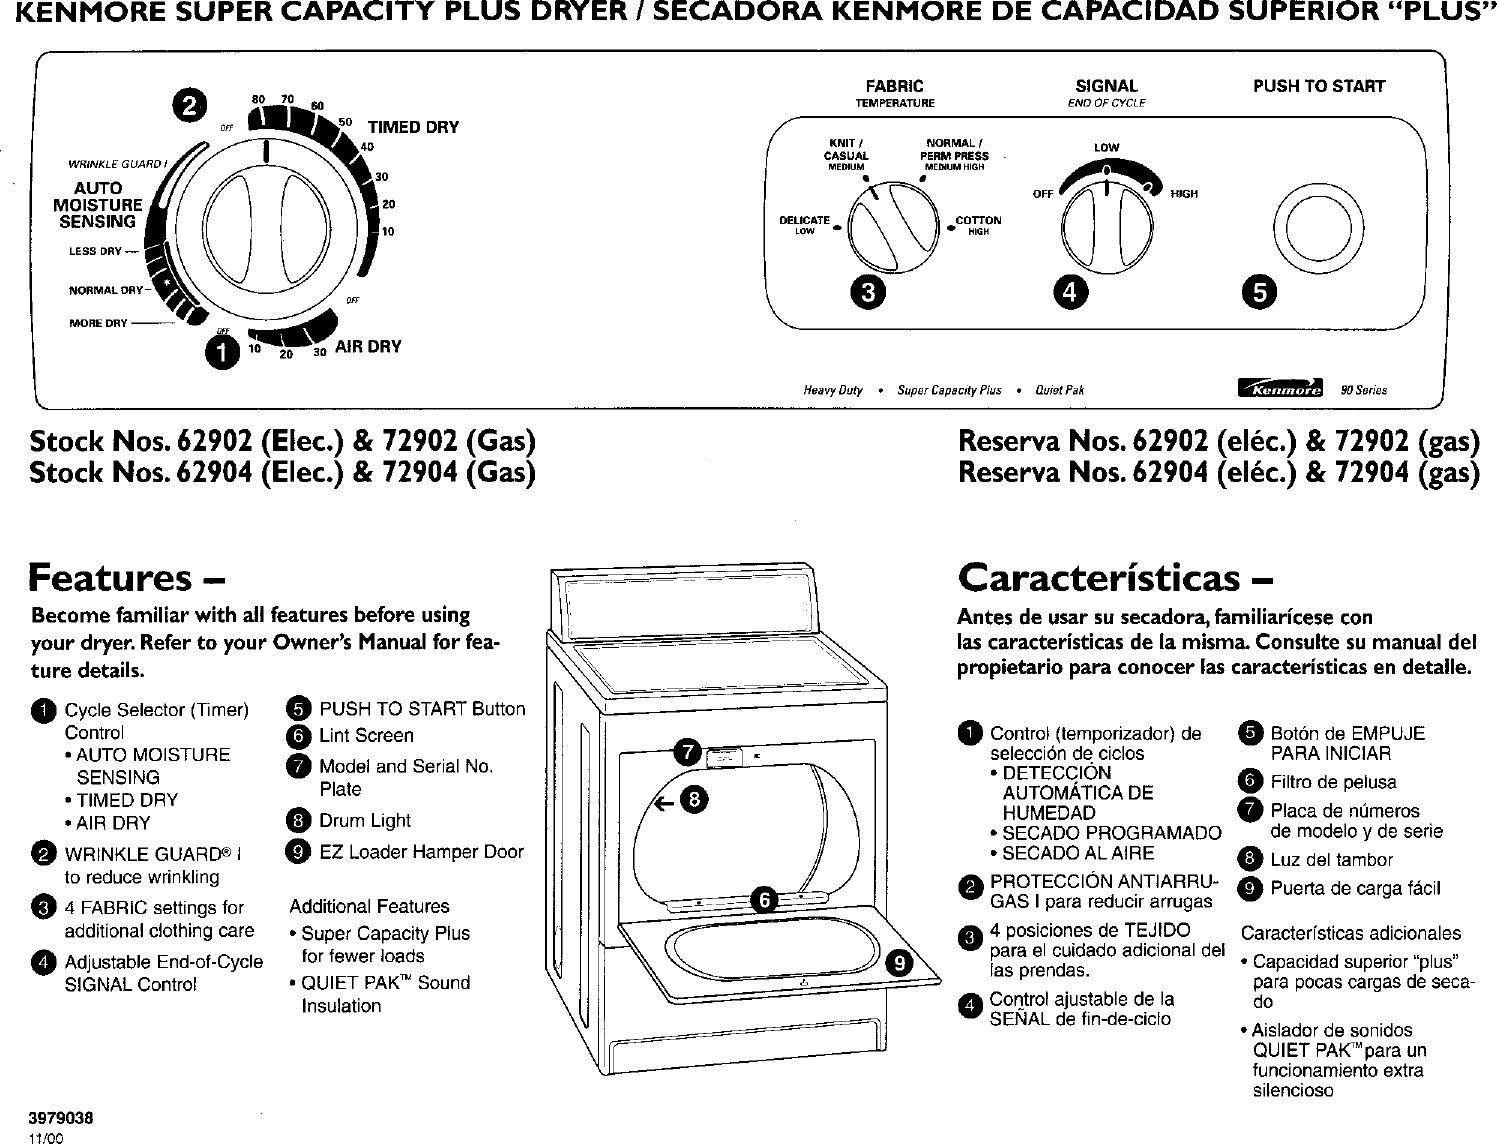 Kenmore Dryer Diagram Control Trusted Schematics 11062902100 User Manual Electric Manuals And Guides Model 110 Schematic